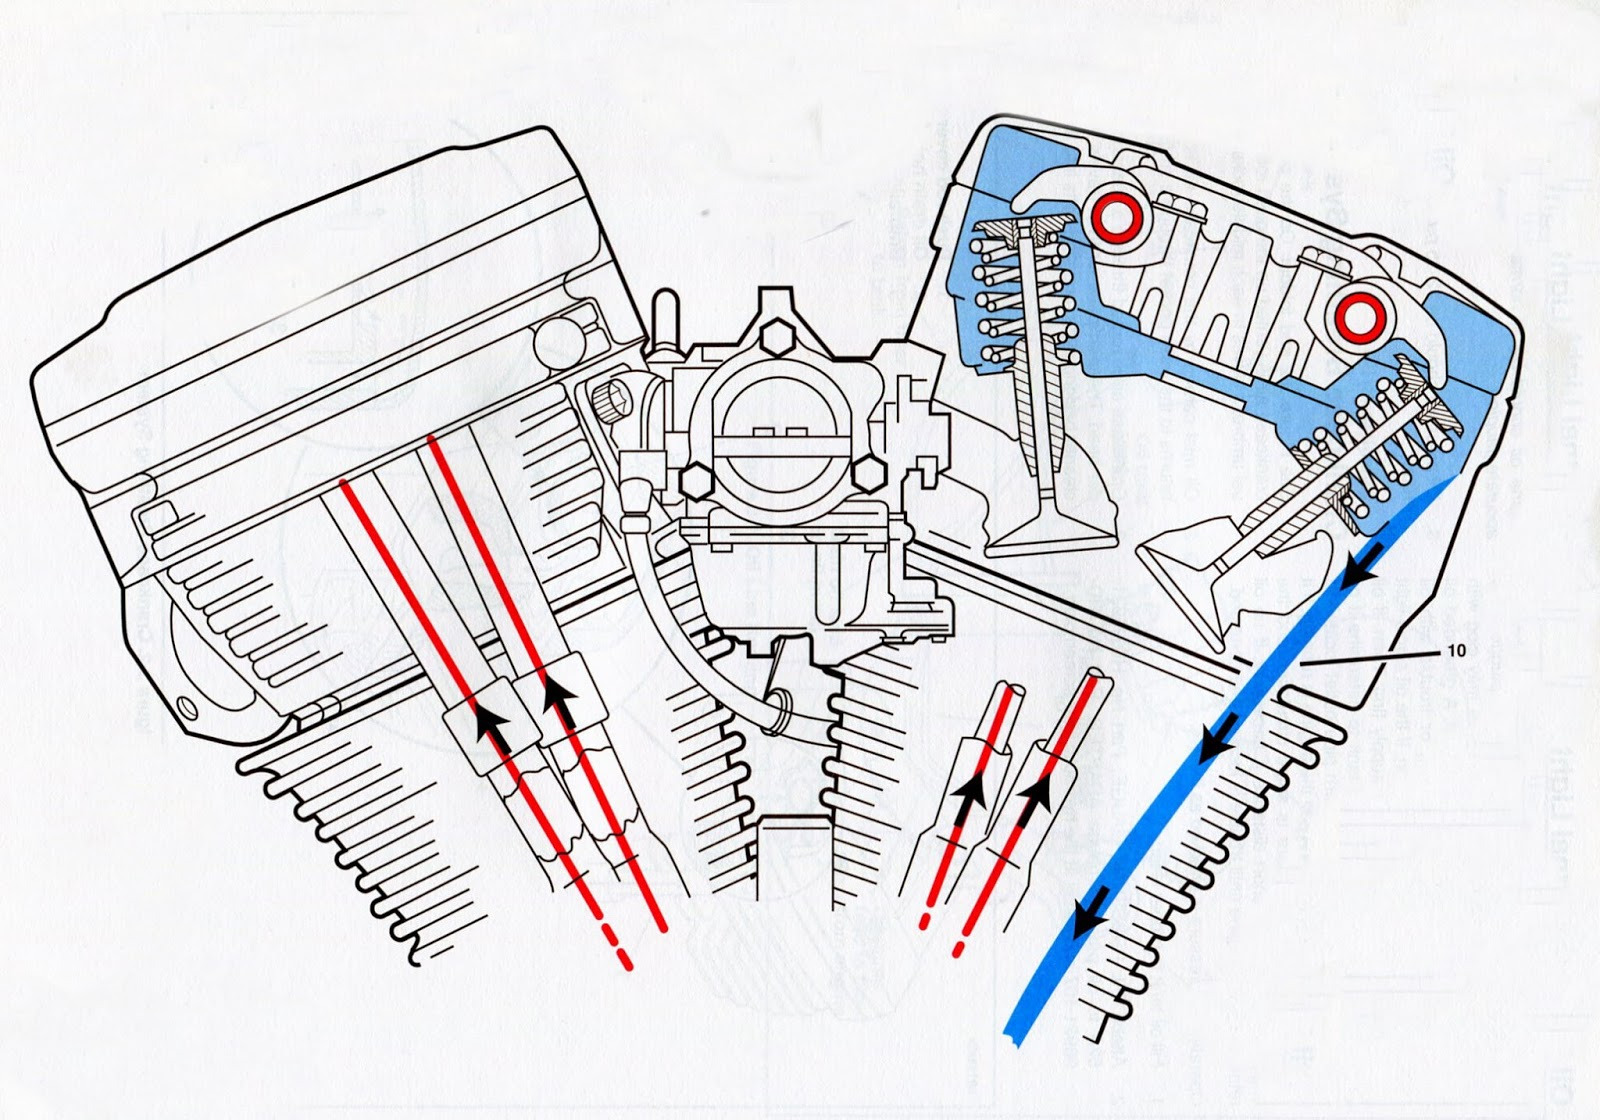 tech files harley davidson evolution oiling system u0026 oil psi signalschematic b oil path through [ 1600 x 1120 Pixel ]